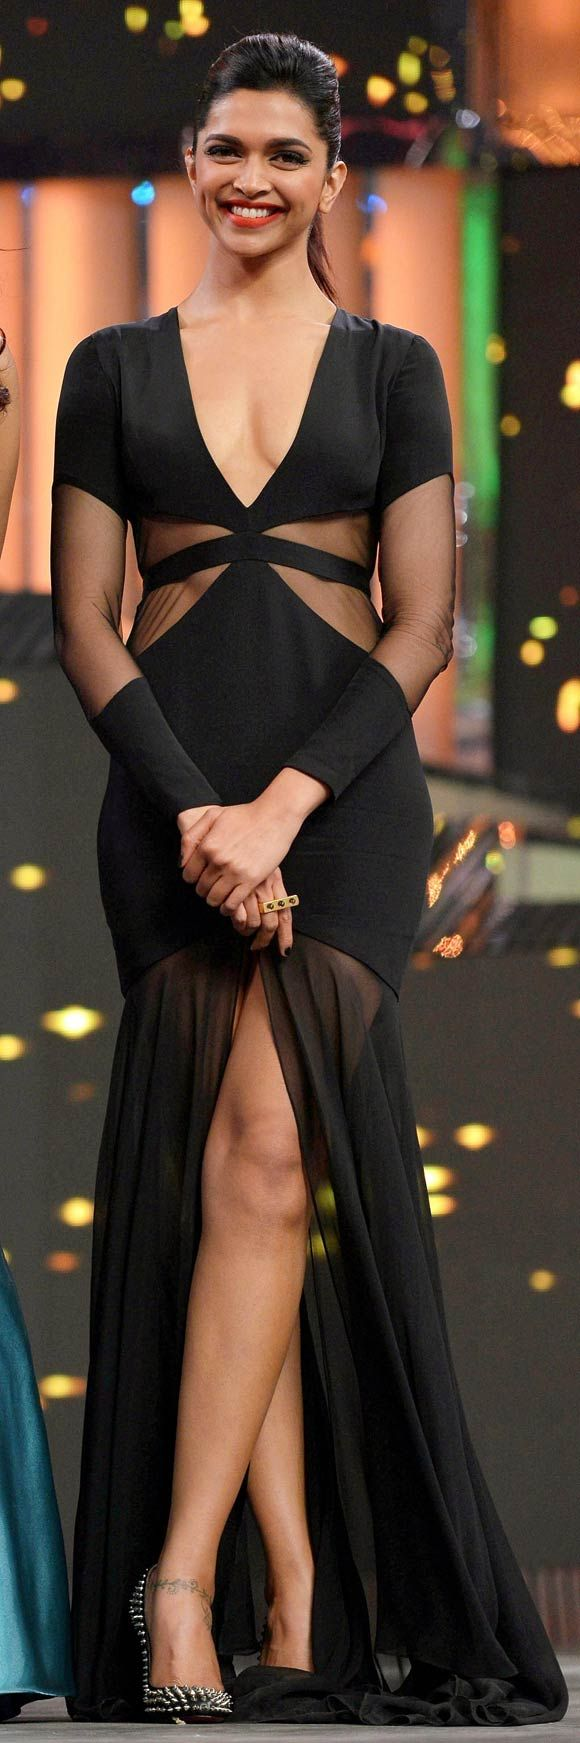 Deepika Padukone at The Filmfare awards 2013